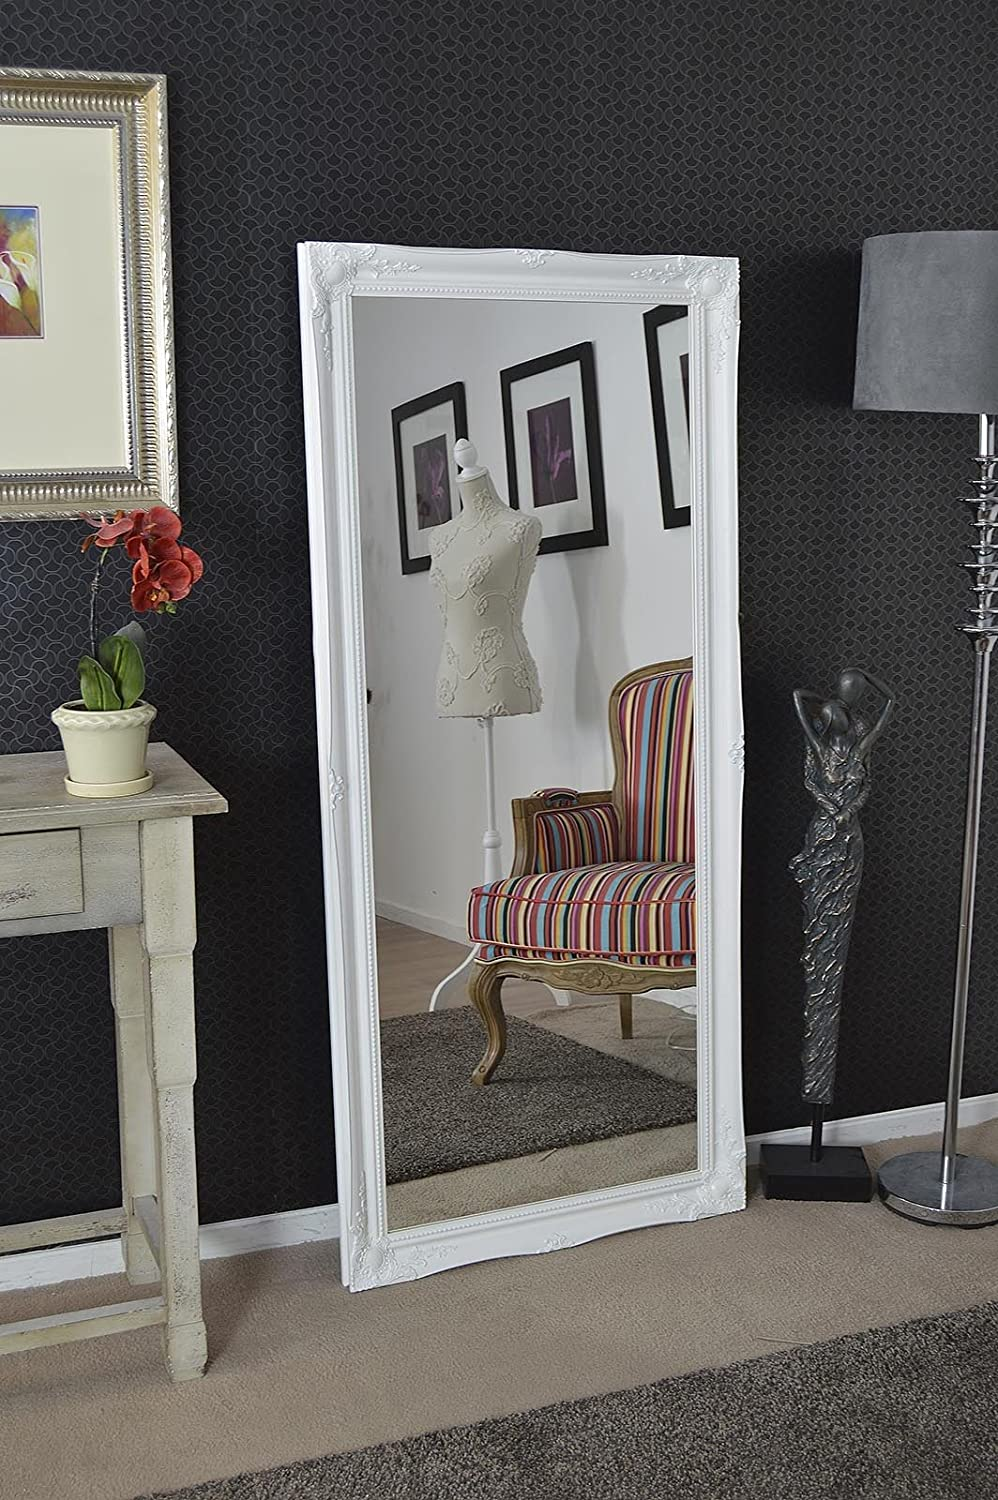 full length white dressing hall mirror complete with premium quality glass overall size 66 inches x 30 inches 168cm x 77cm